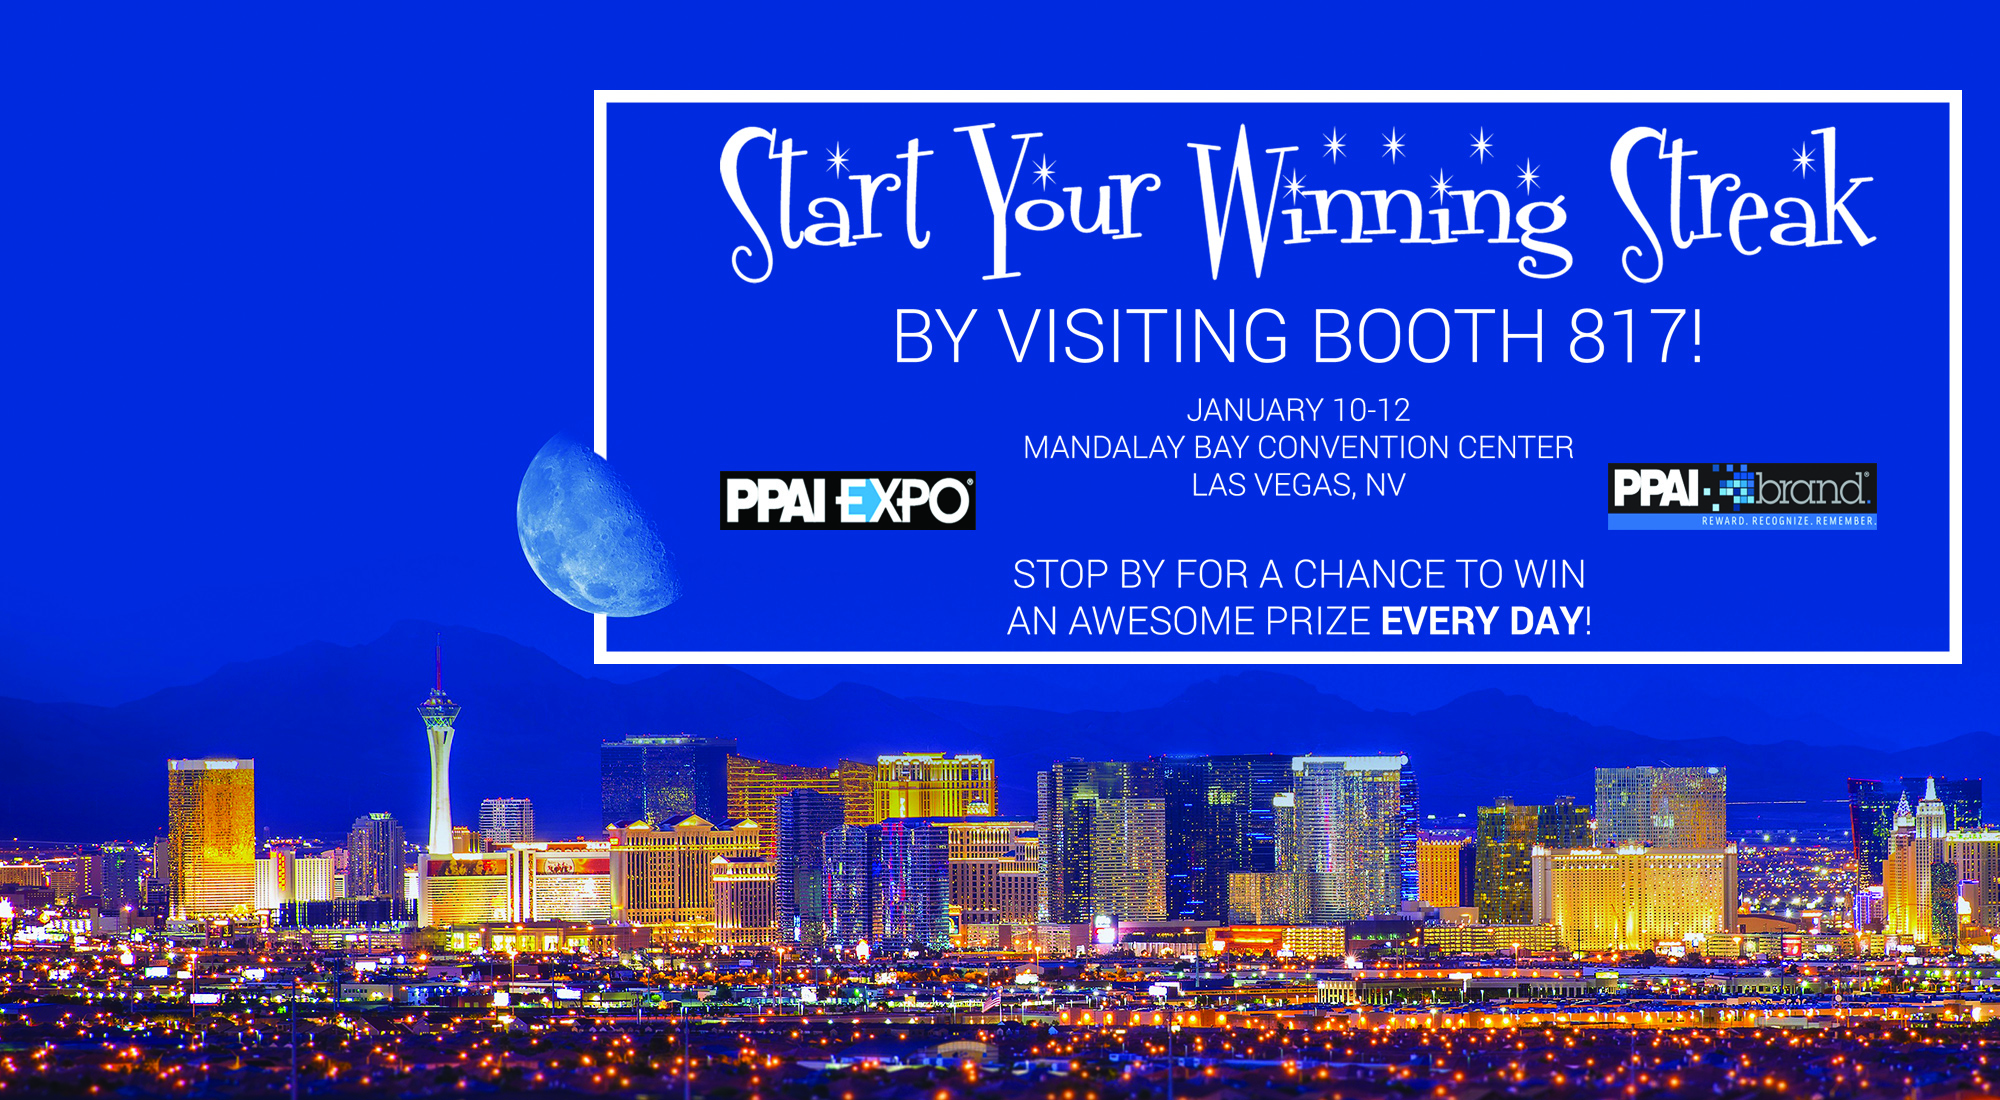 Join Top Brands at PPAI Expo